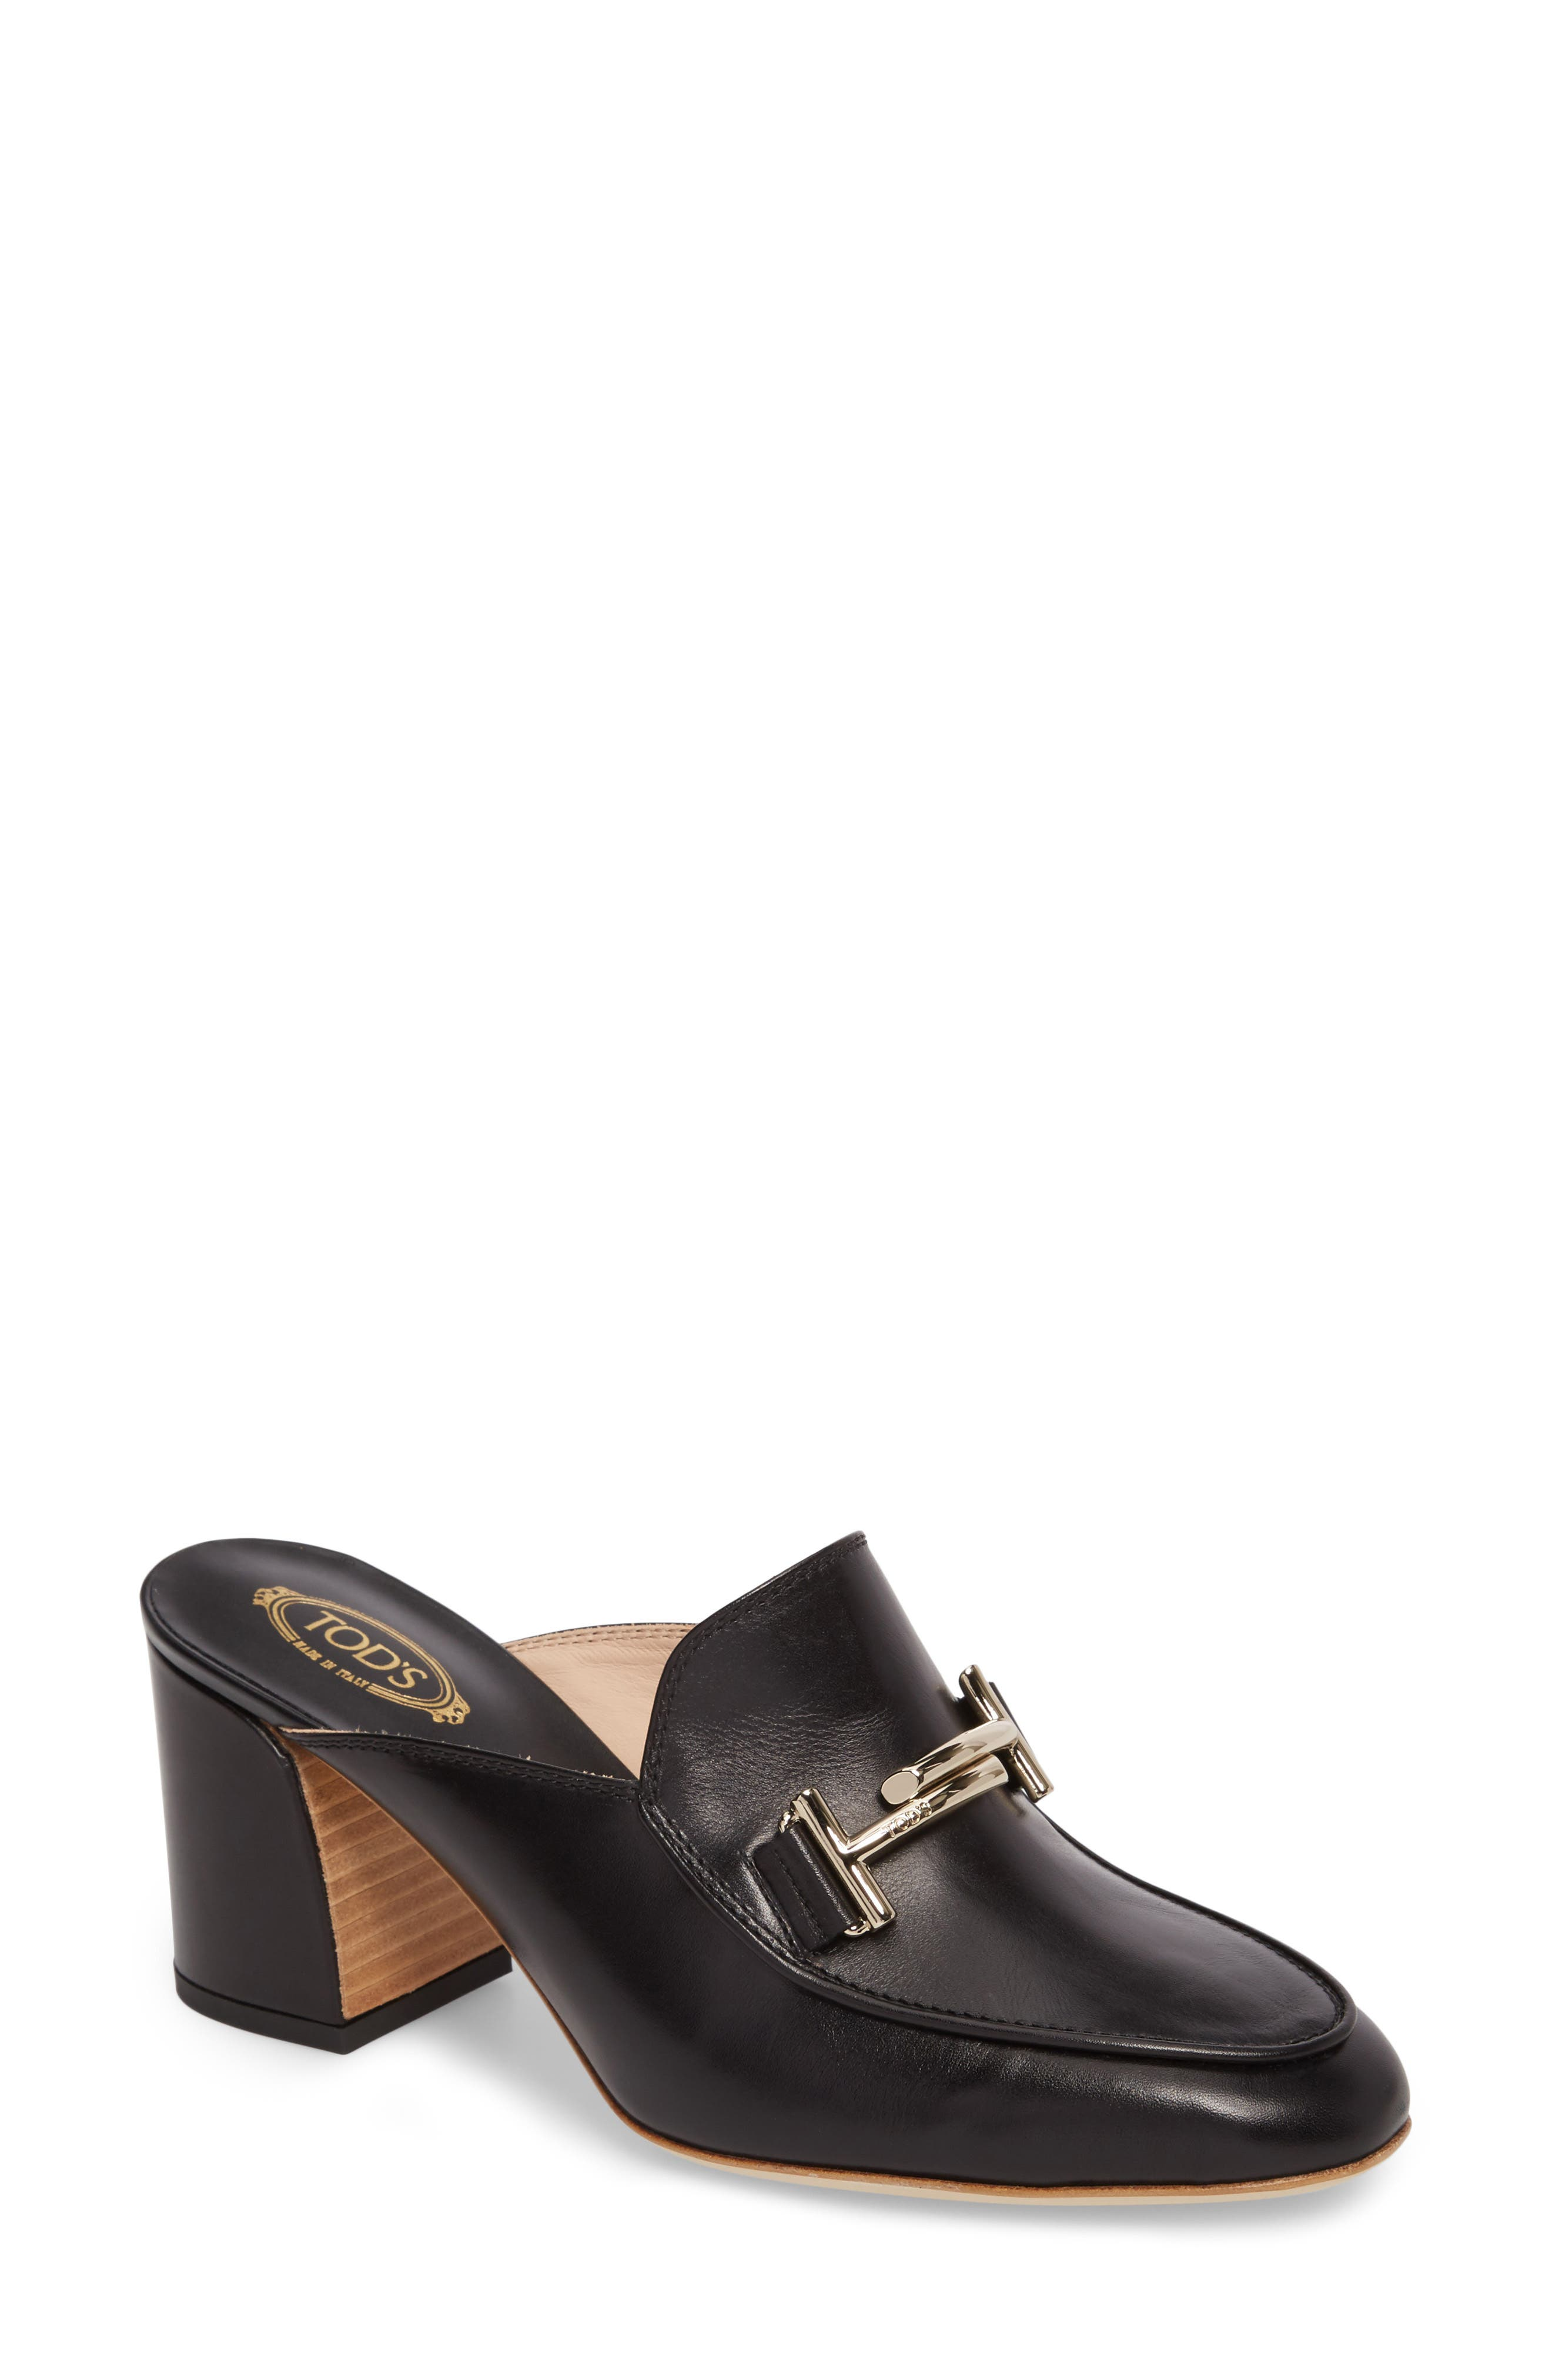 Alternate Image 1 Selected - Tod's Double T Mule (Women)